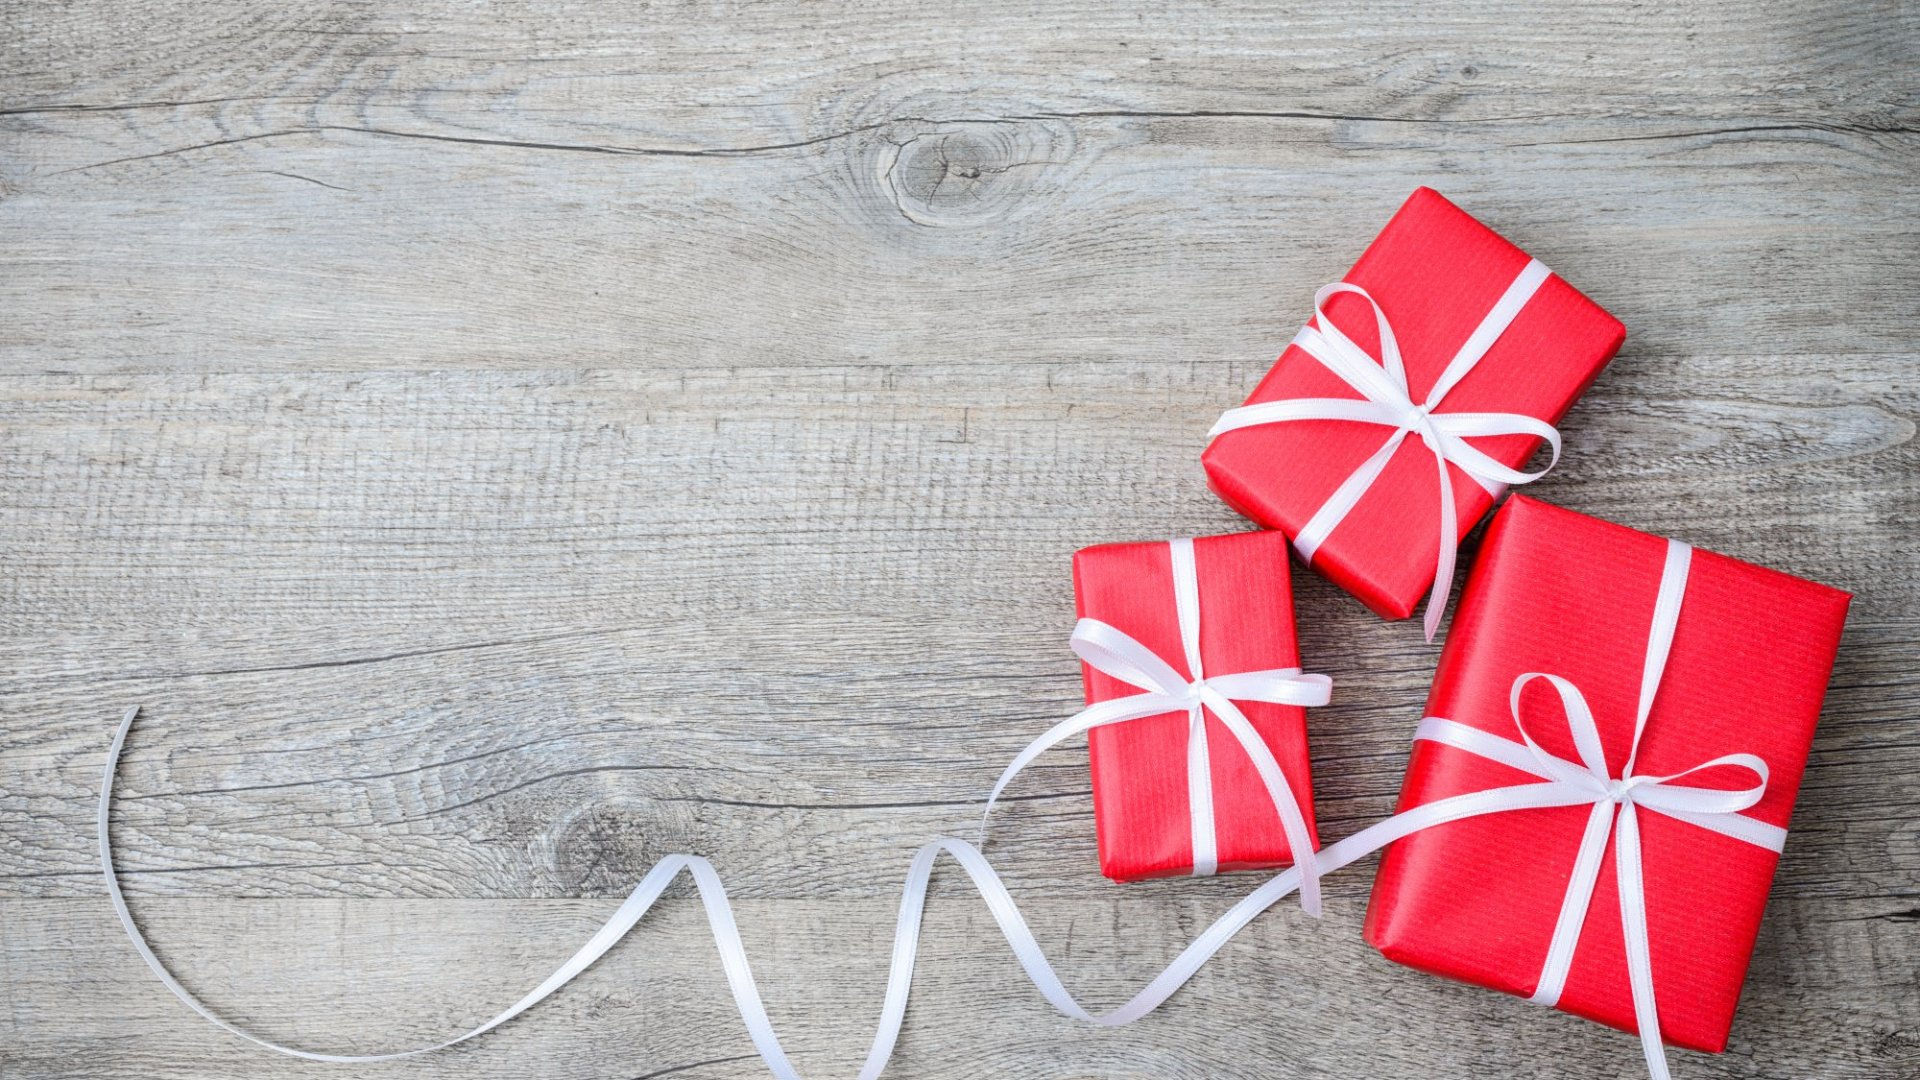 Feeling Overwhelmed? These 4 Tips Will Help You Remain Calm and Focused During the Holidays